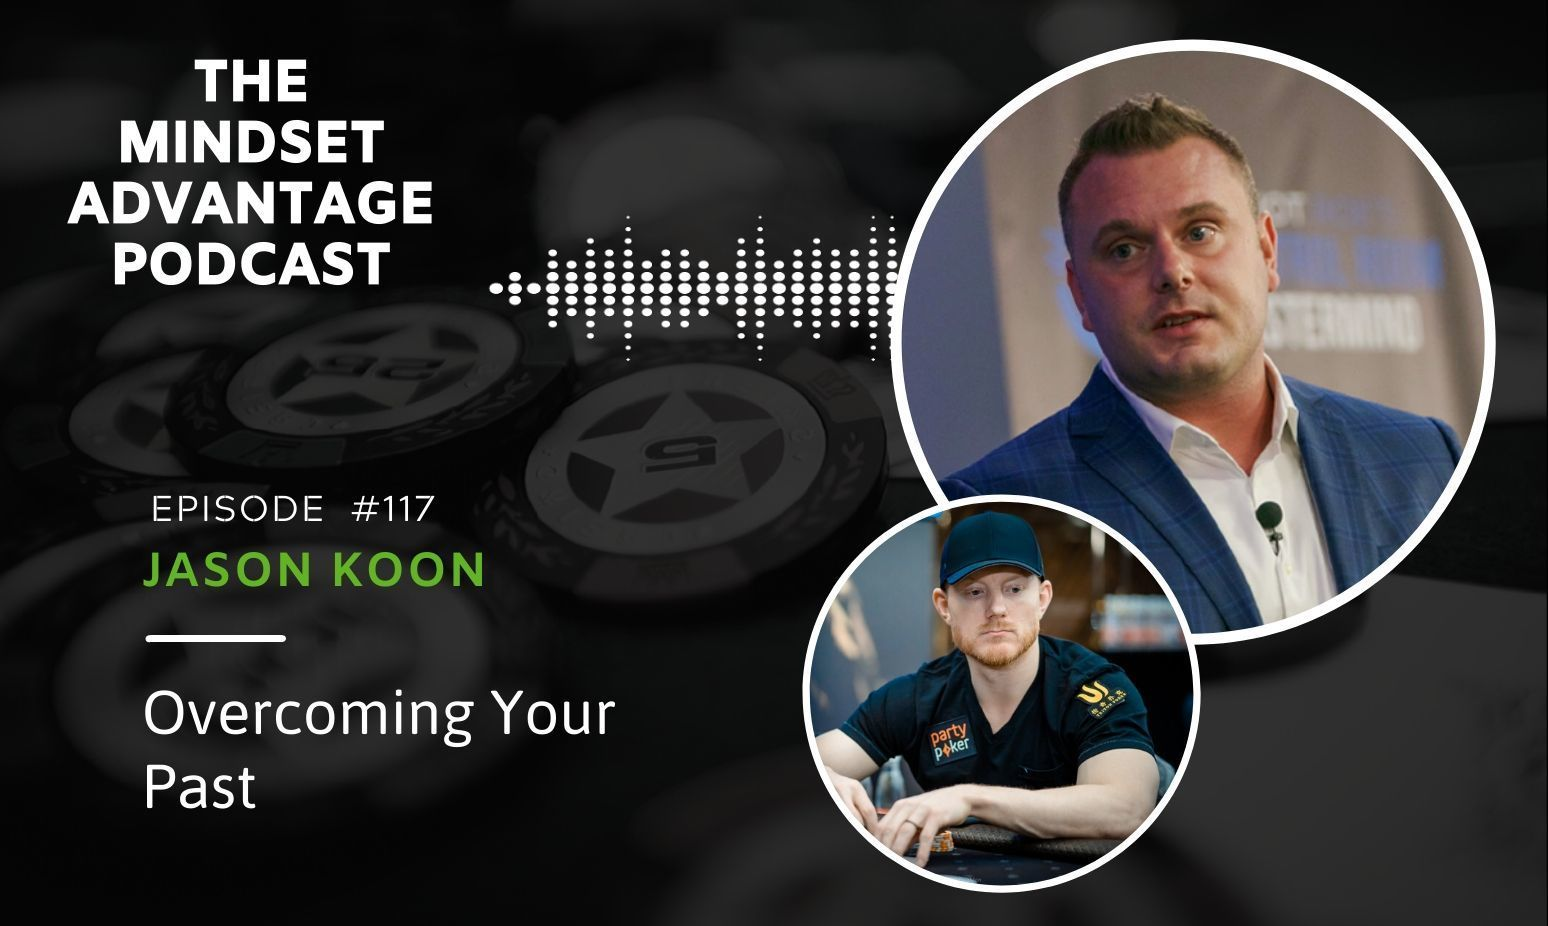 Episode 117 - Jason Koon